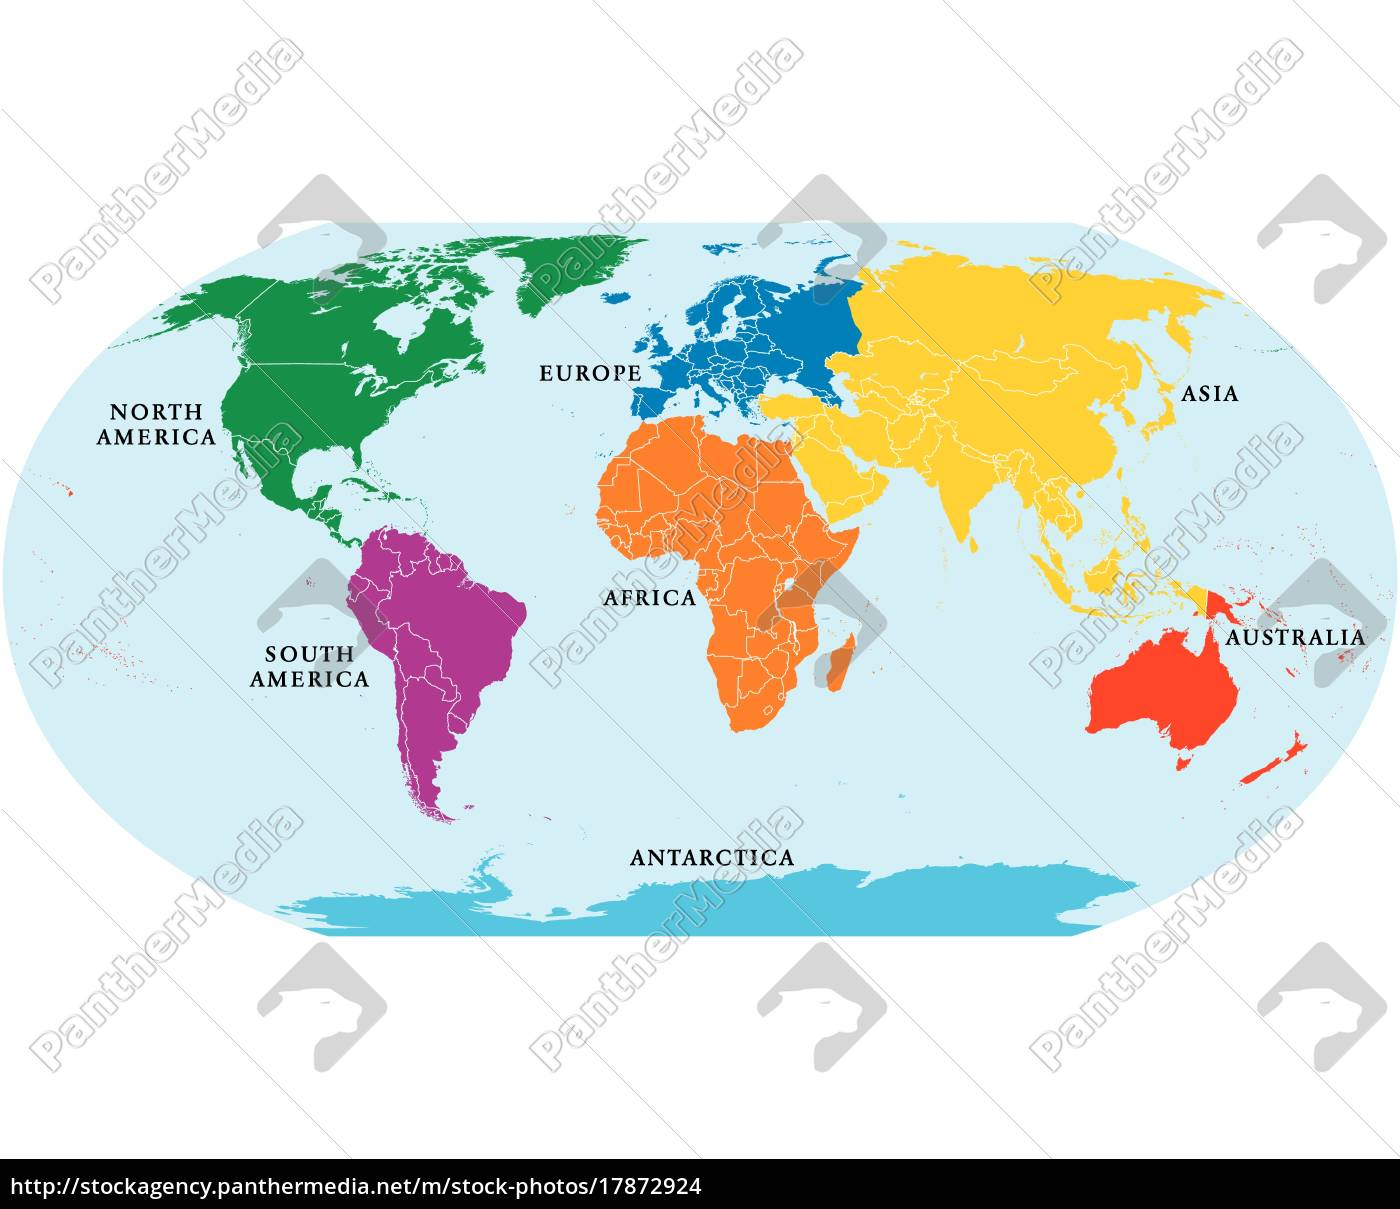 World Map With Australia.Royalty Free Vector 17872924 Seven Continents World Map